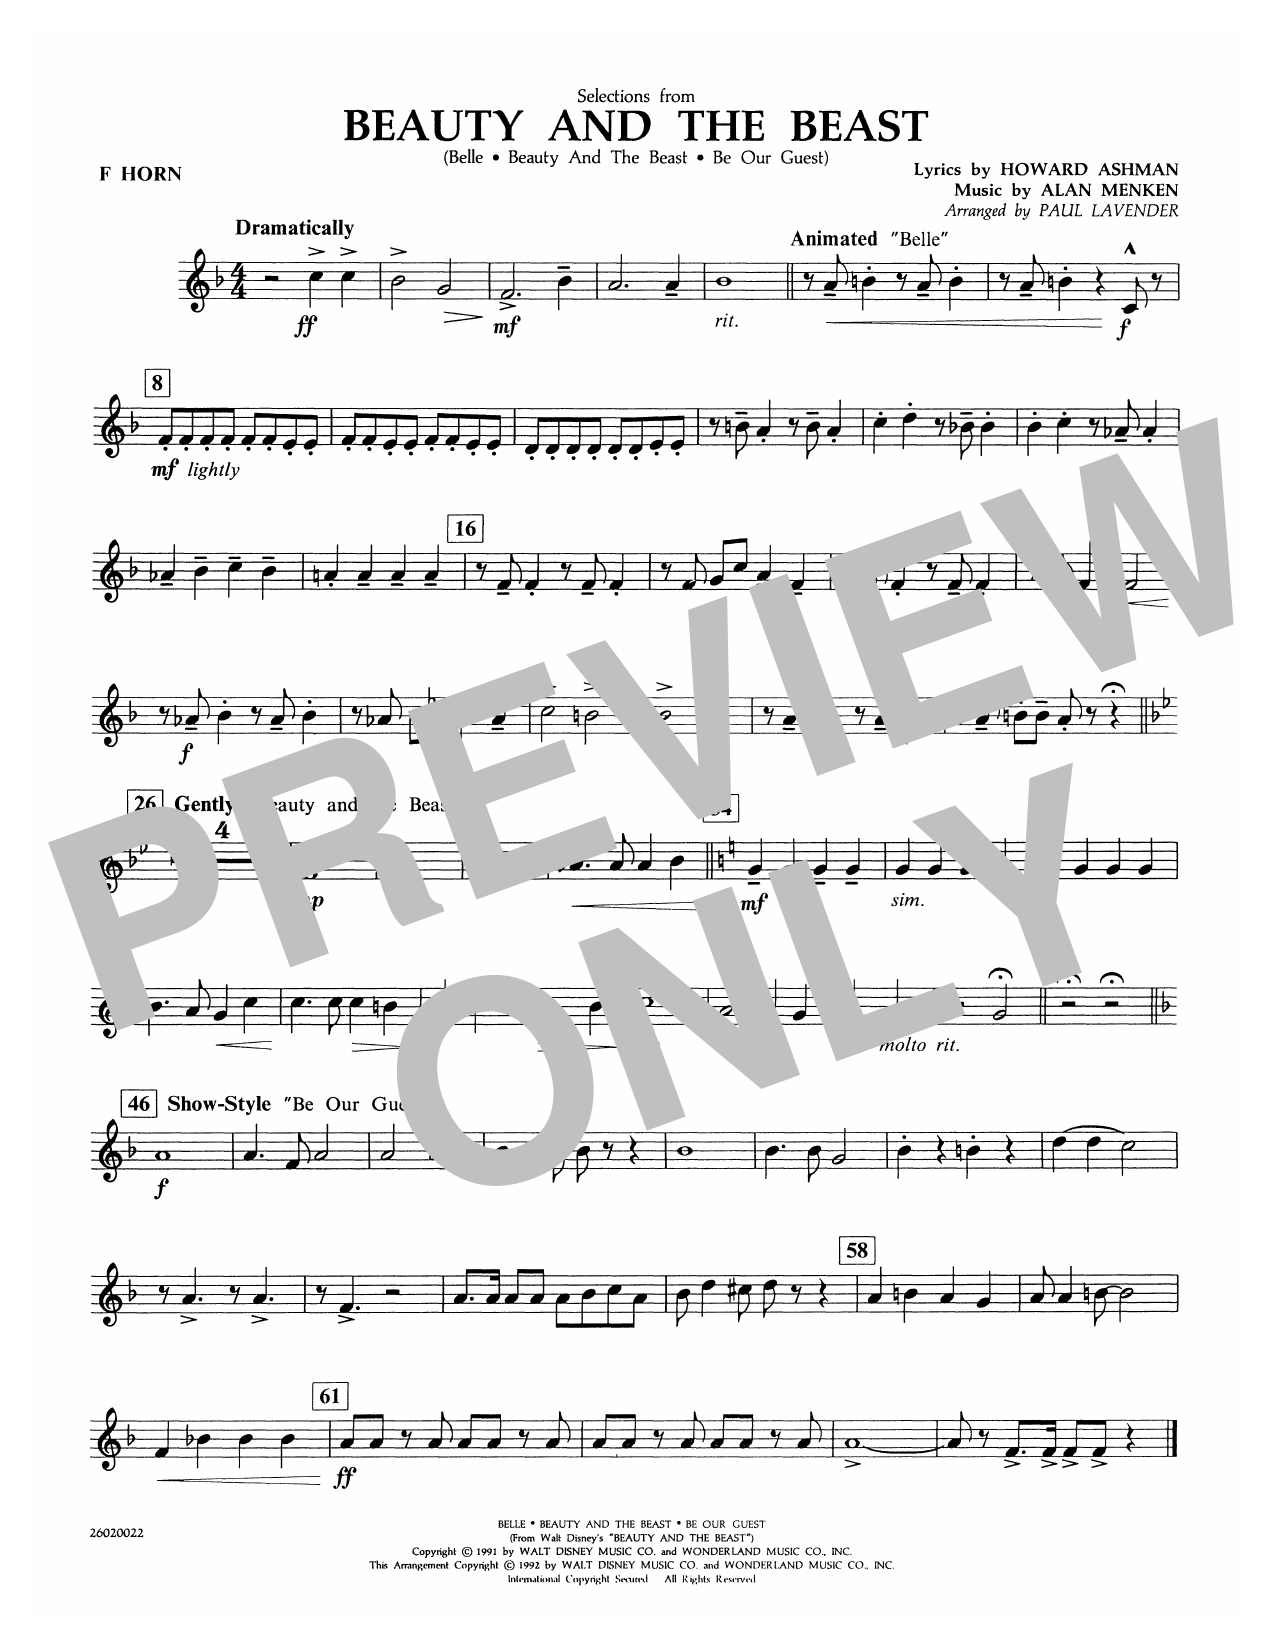 Paul Lavender Selections from Beauty and the Beast - F Horn sheet music notes and chords. Download Printable PDF.